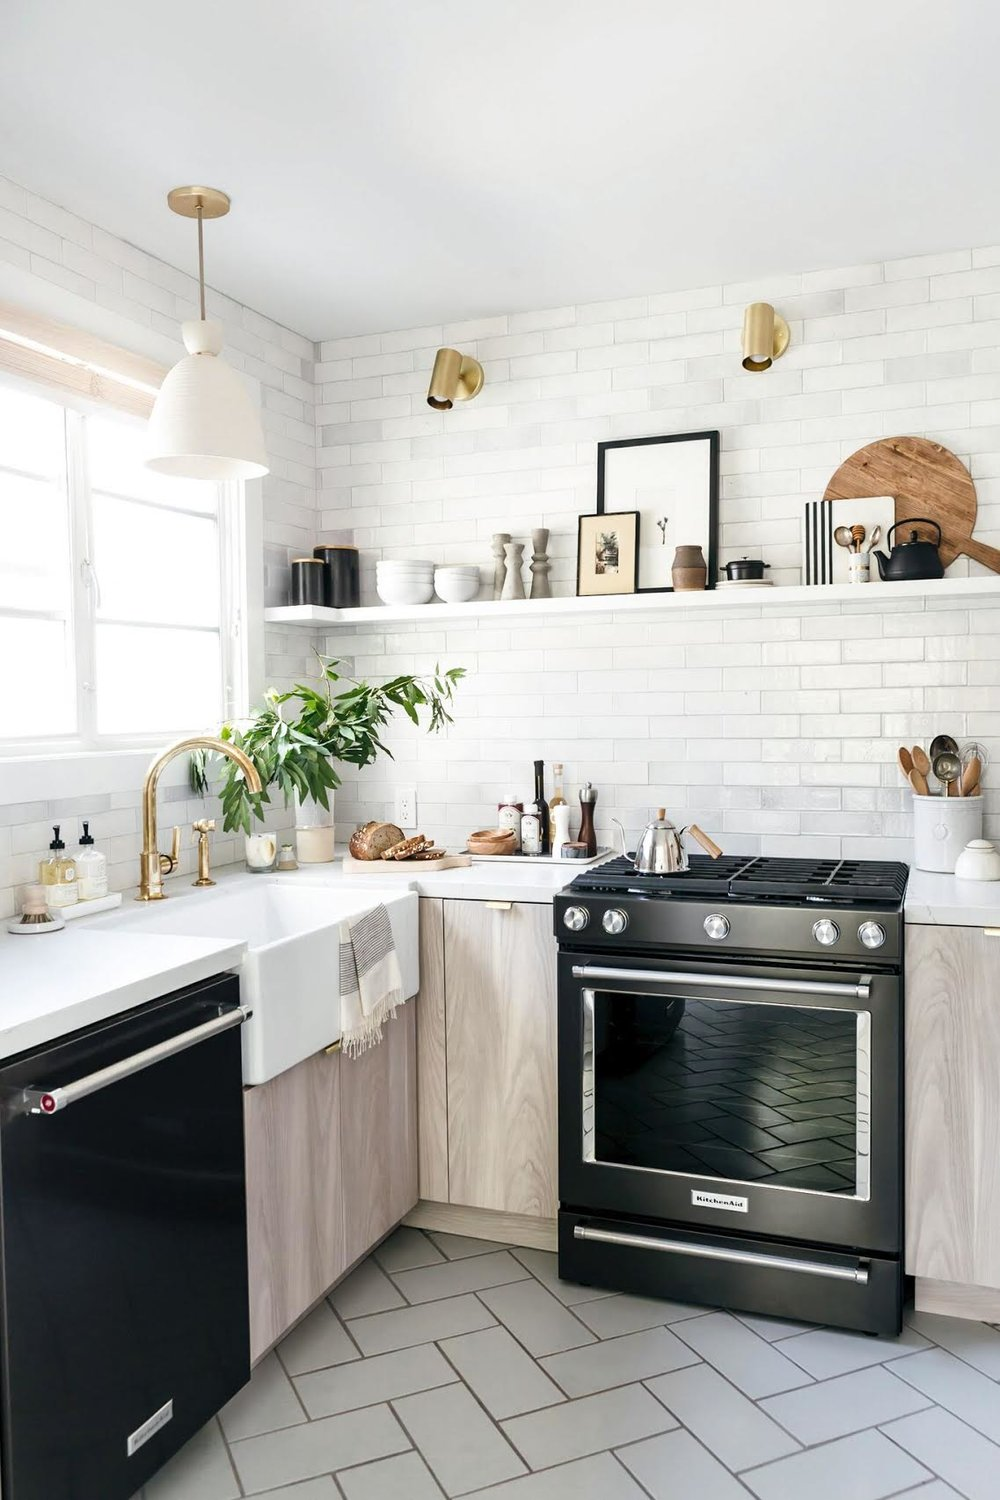 6 Tips For Small Kitchen Design Studio Mcgee